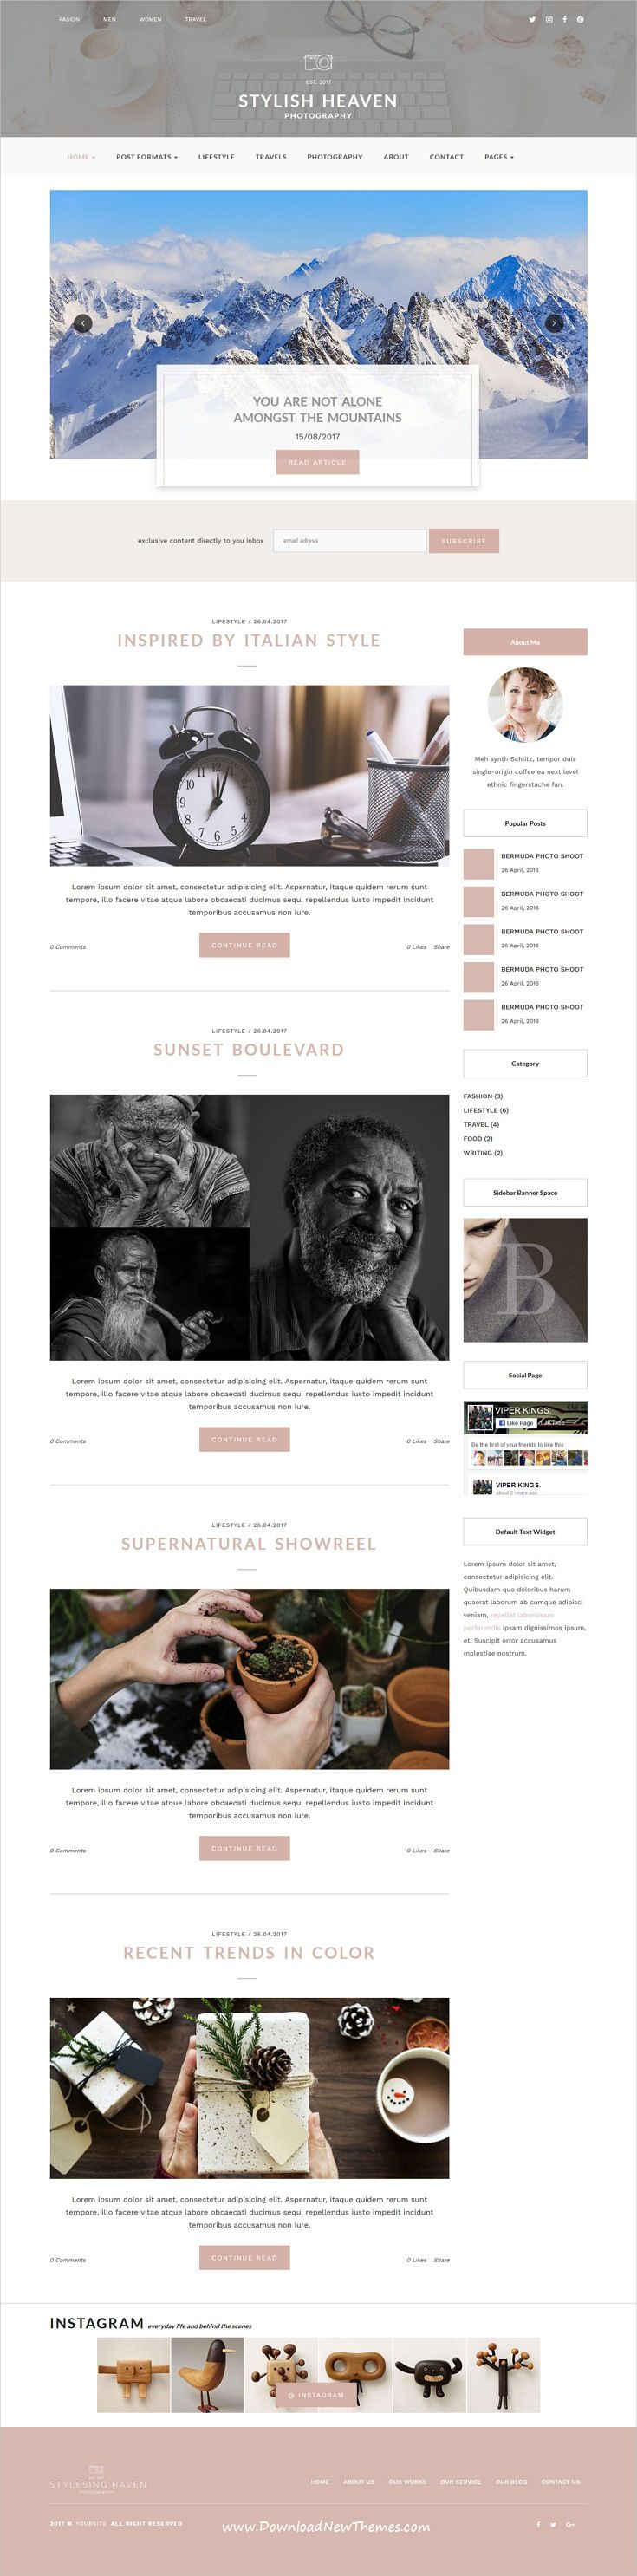 Stylish Heaven - Personal Blog - HTML Template | Template, Website ...